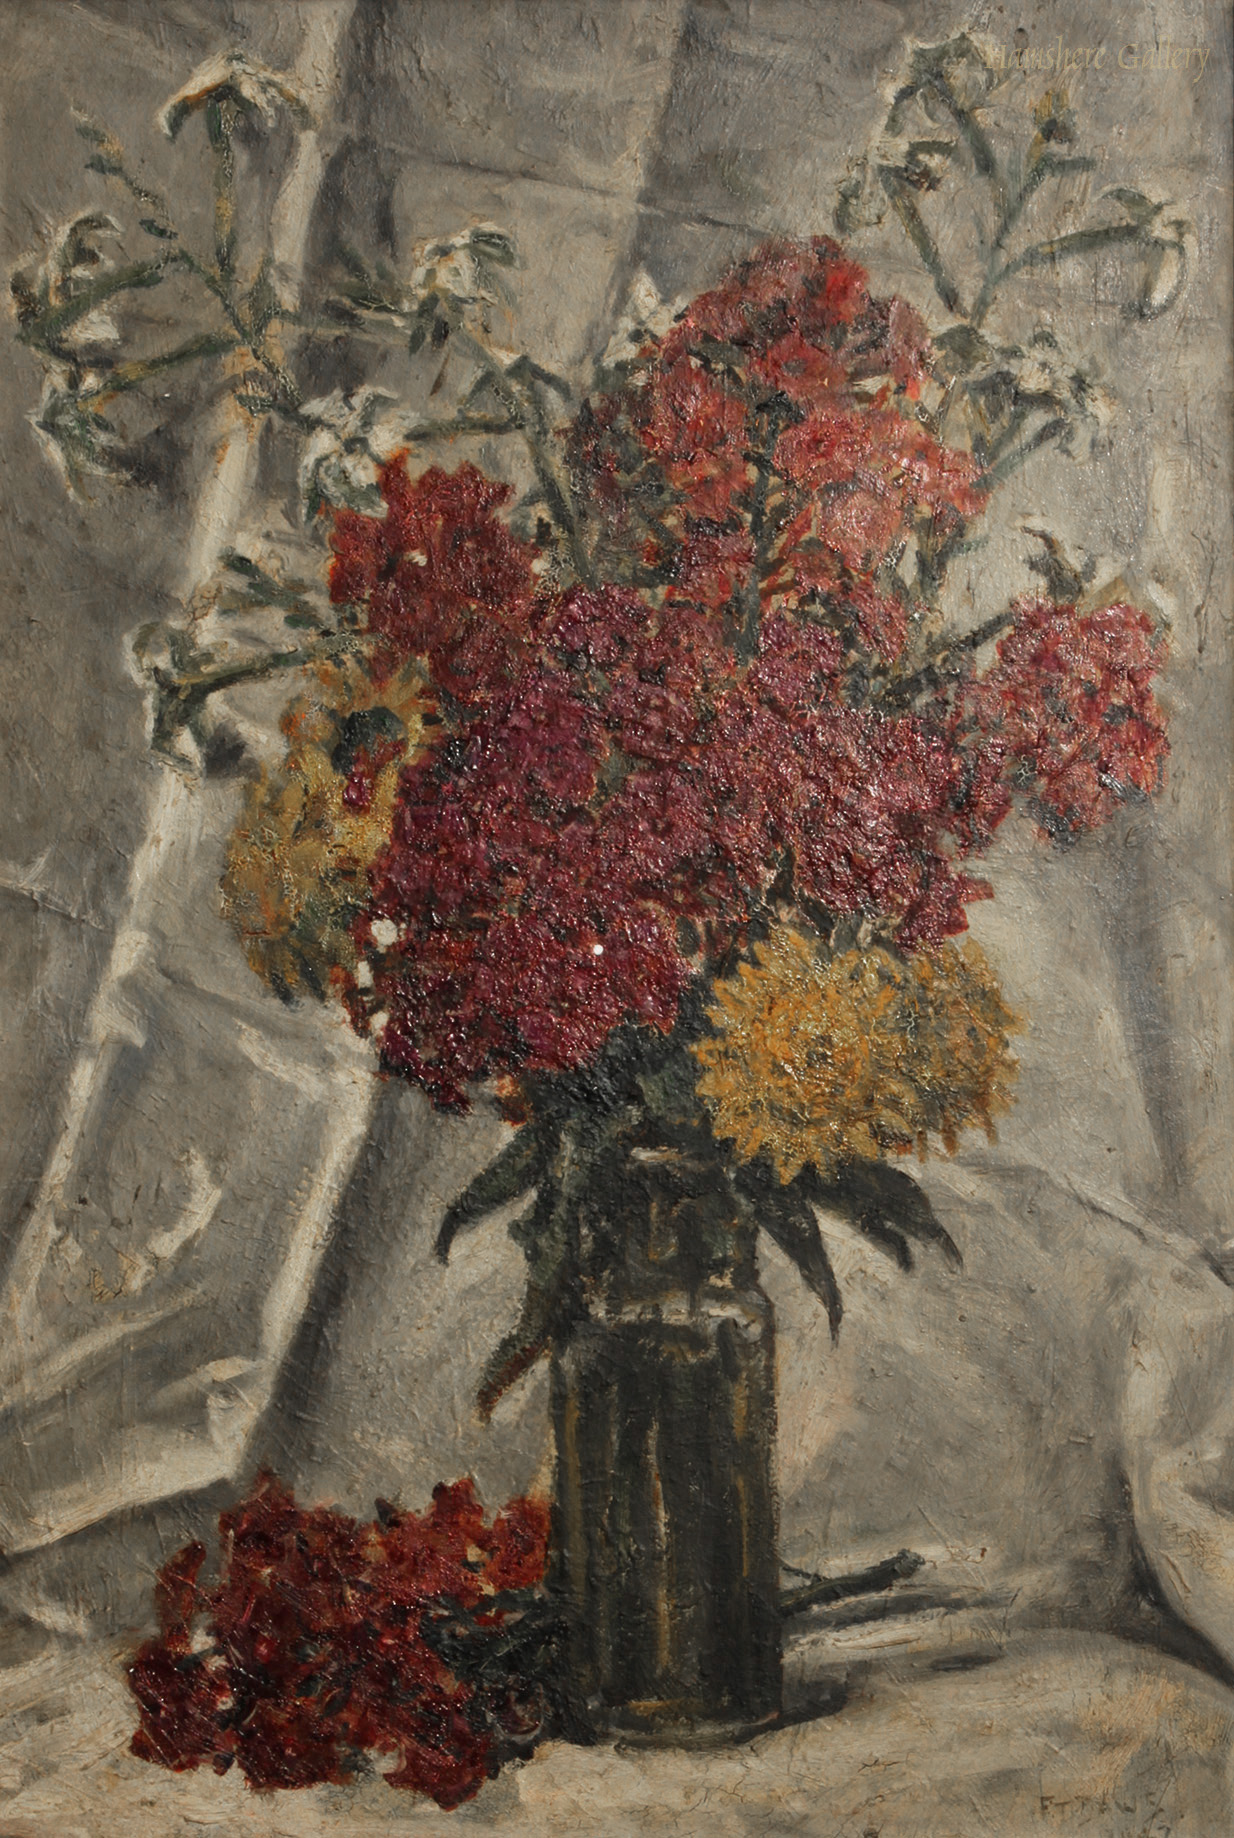 Click to see full size: A still life in oil of �Zinnias & Dahlias� by William Arthur Chase ARWA (English, 1878-1844)